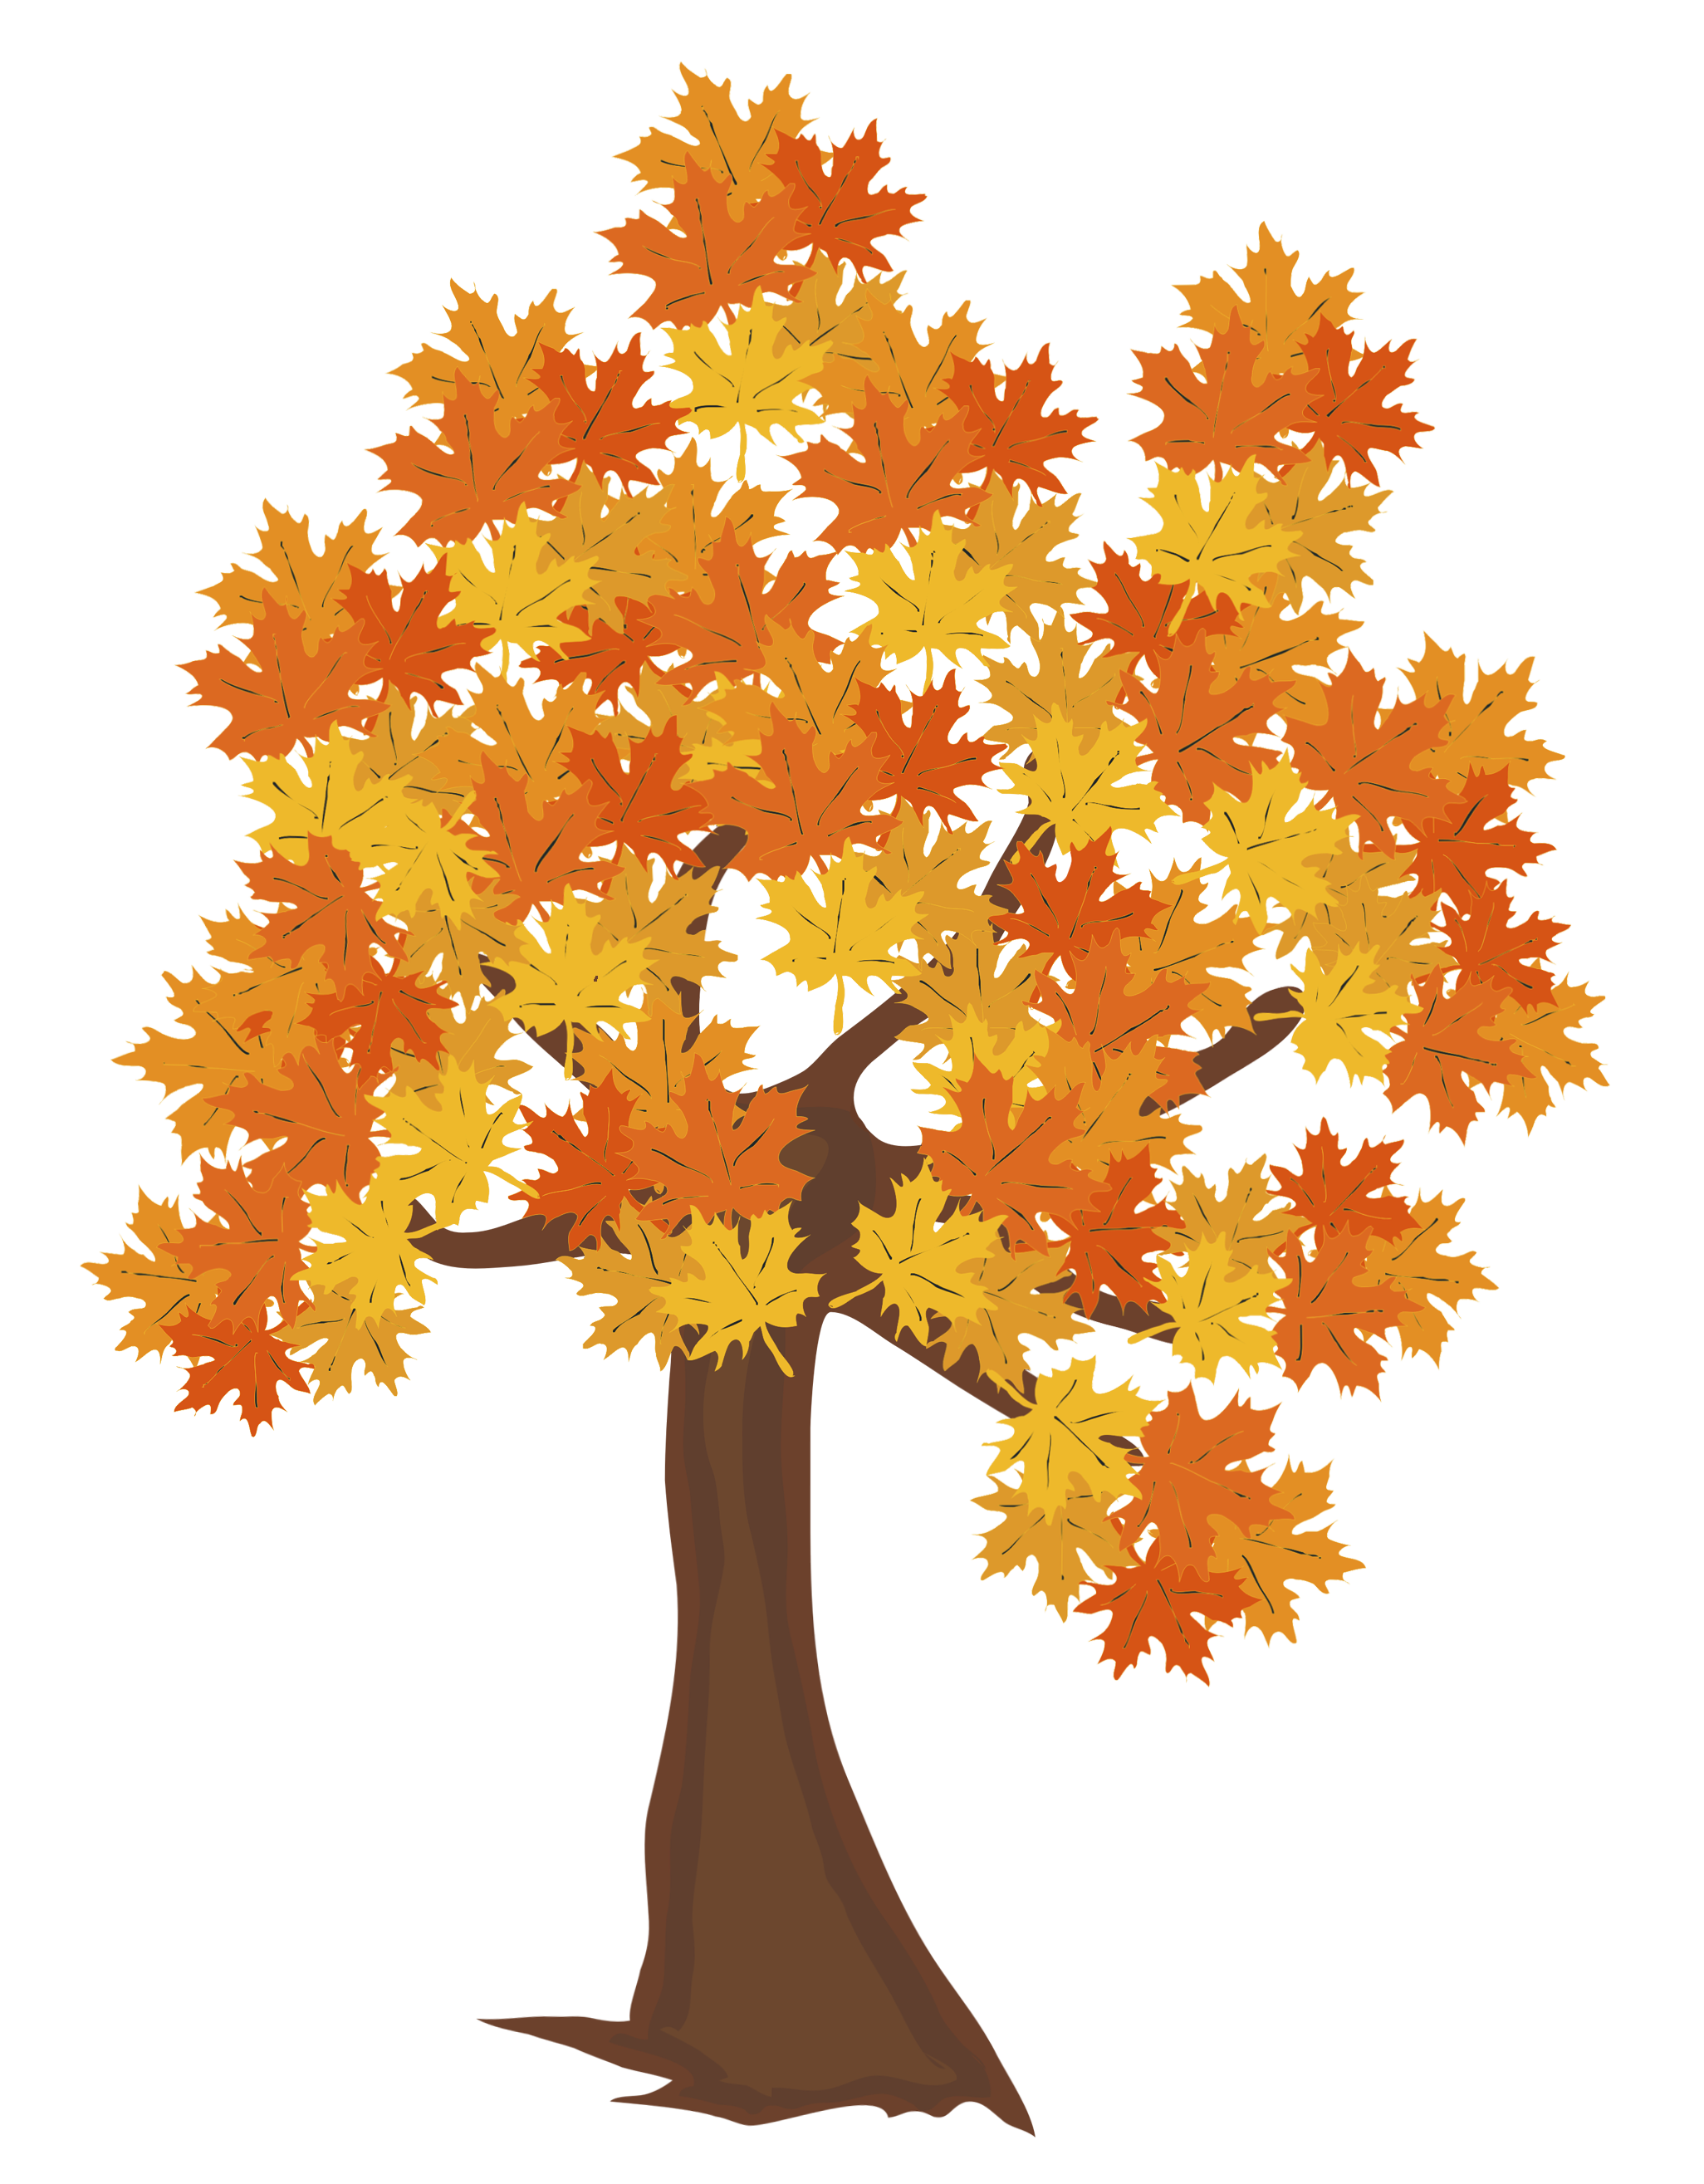 Fall Tree PNG Image.